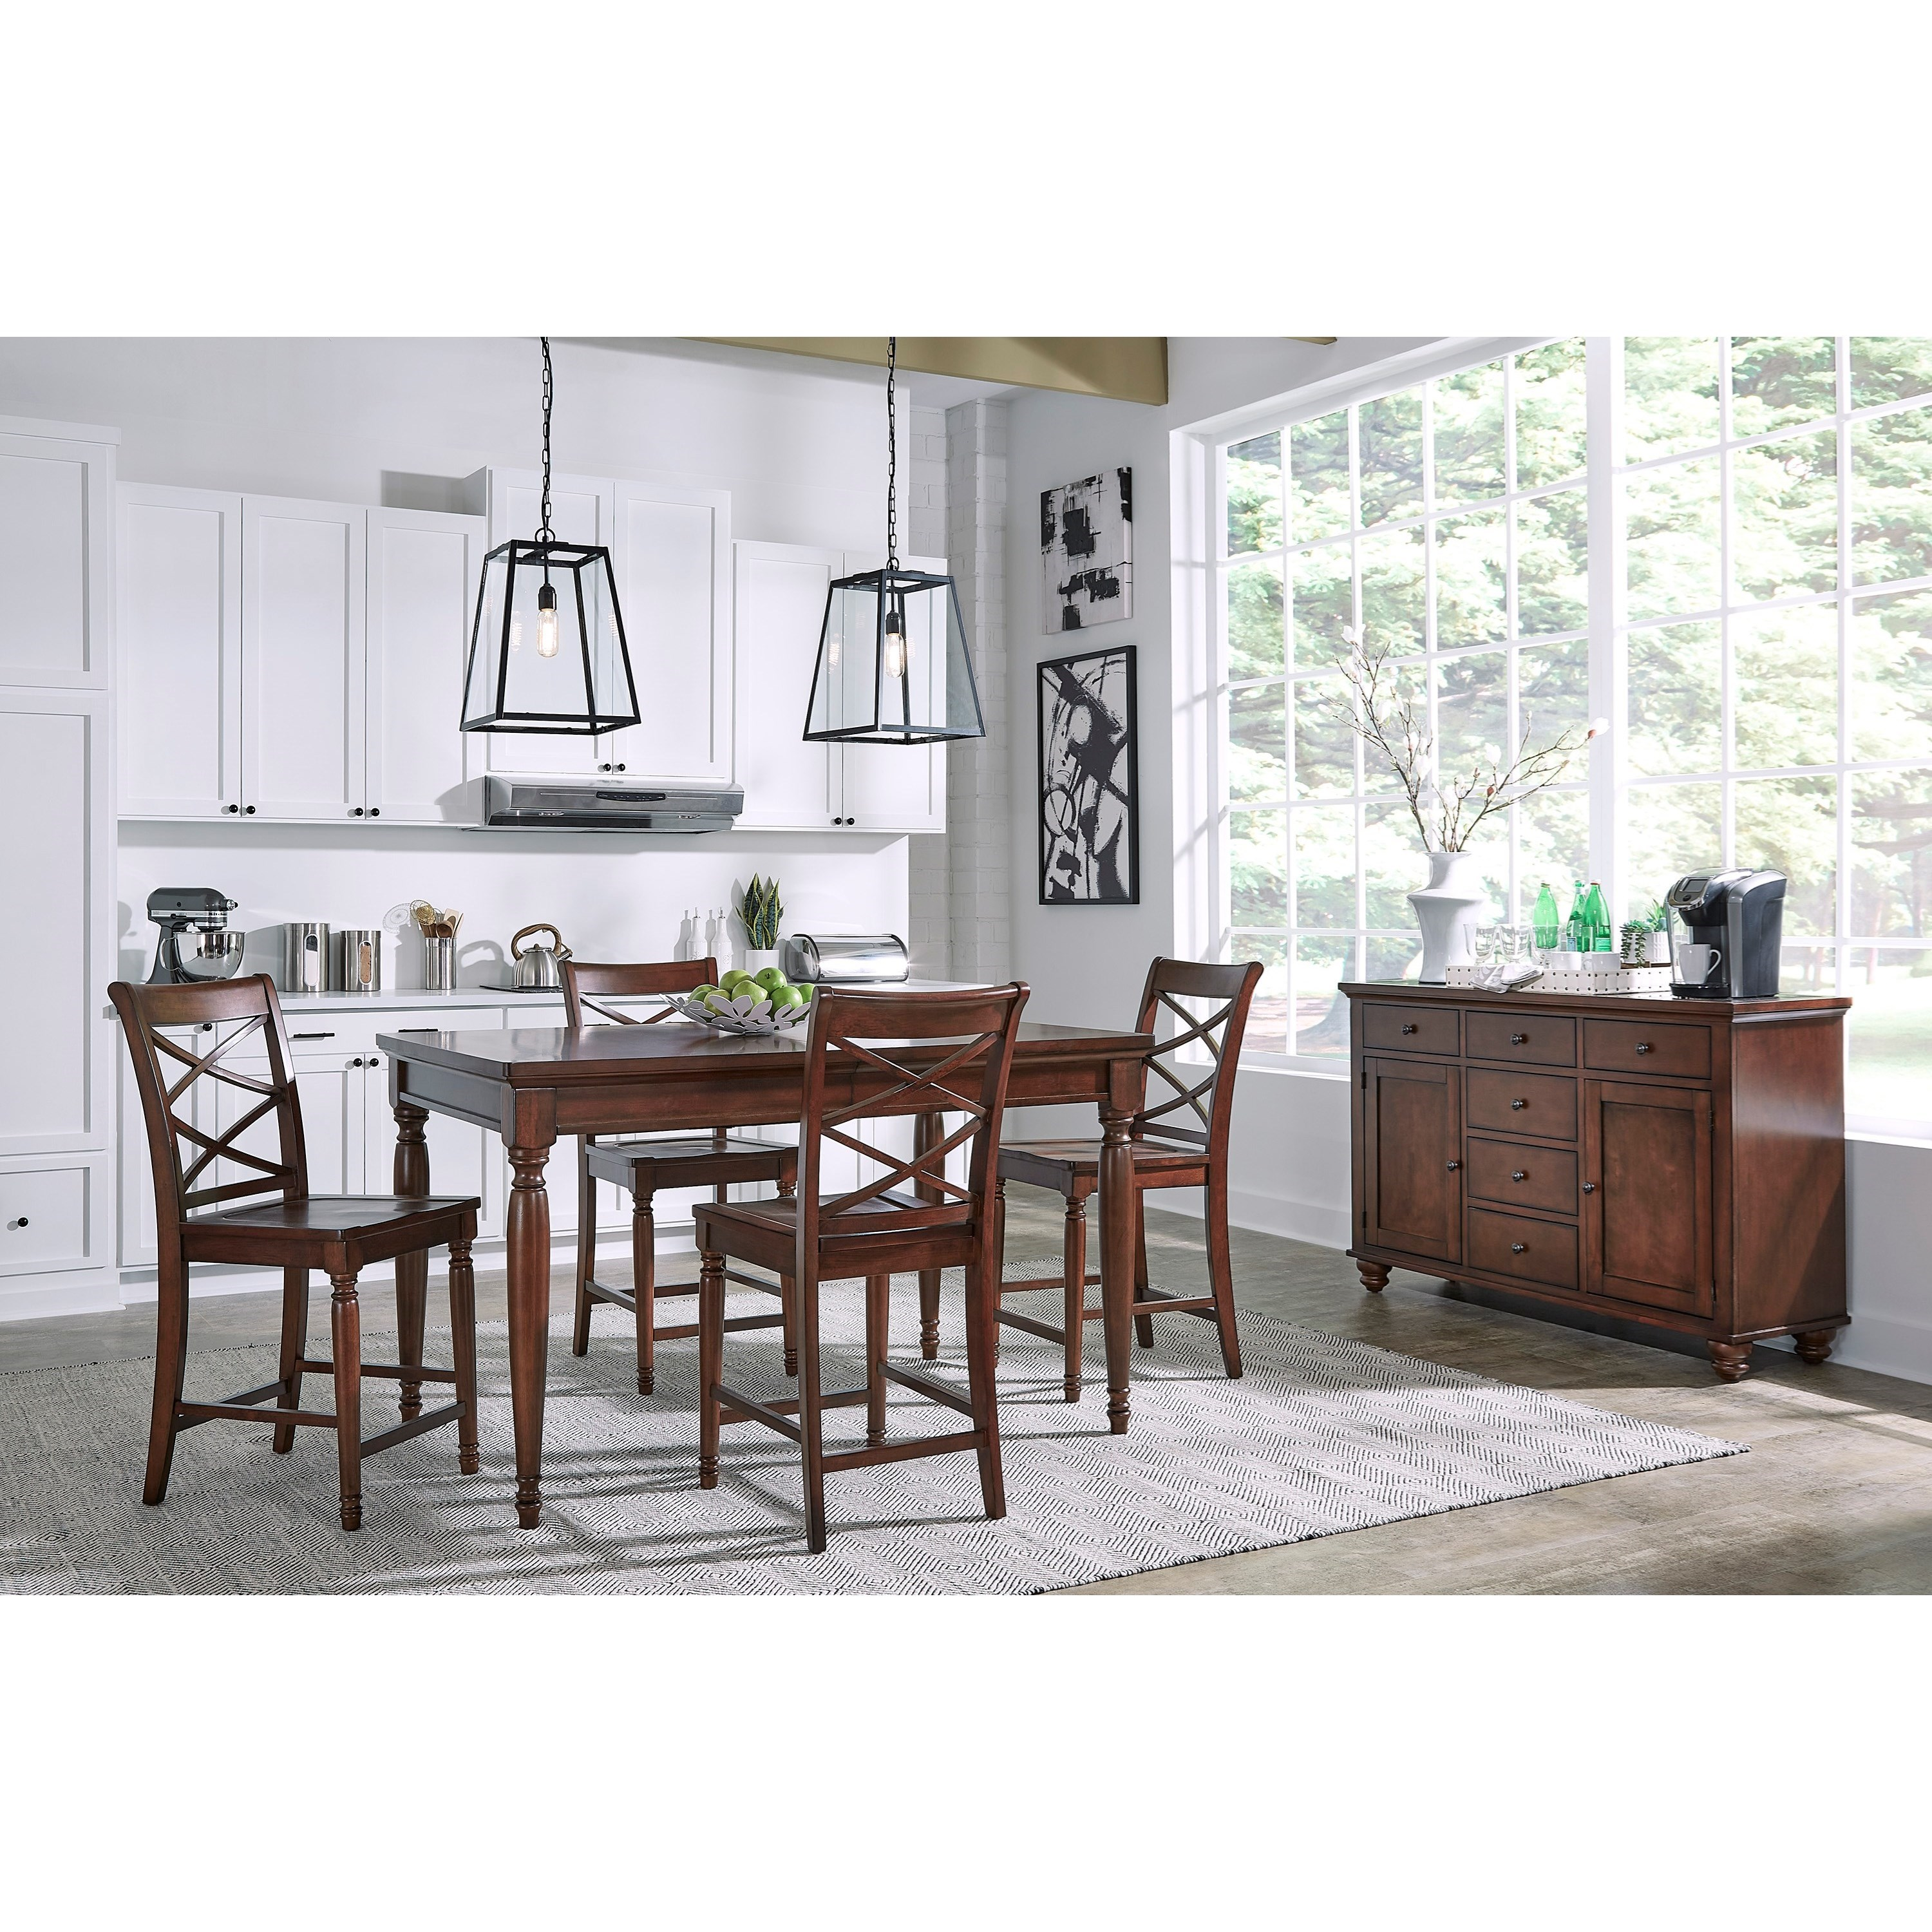 Aspenhome Cambridge 5 Pc. Pub Table Set - Item Number: ICB-6252+4X6671S